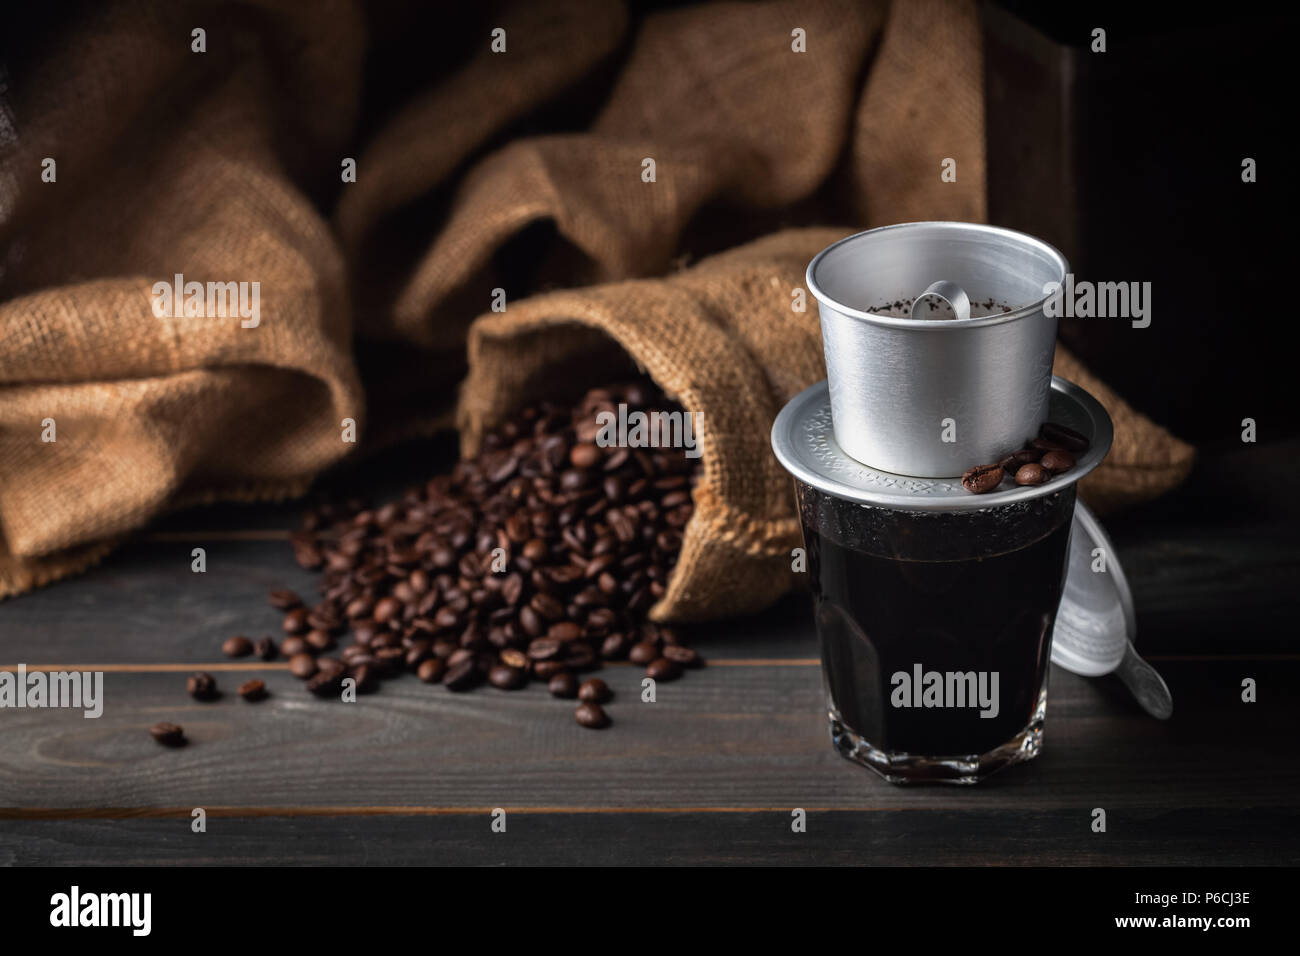 Vintage vietnam coffee dripper, coffee cup and coffee beans with bag. dark food style - Stock Image